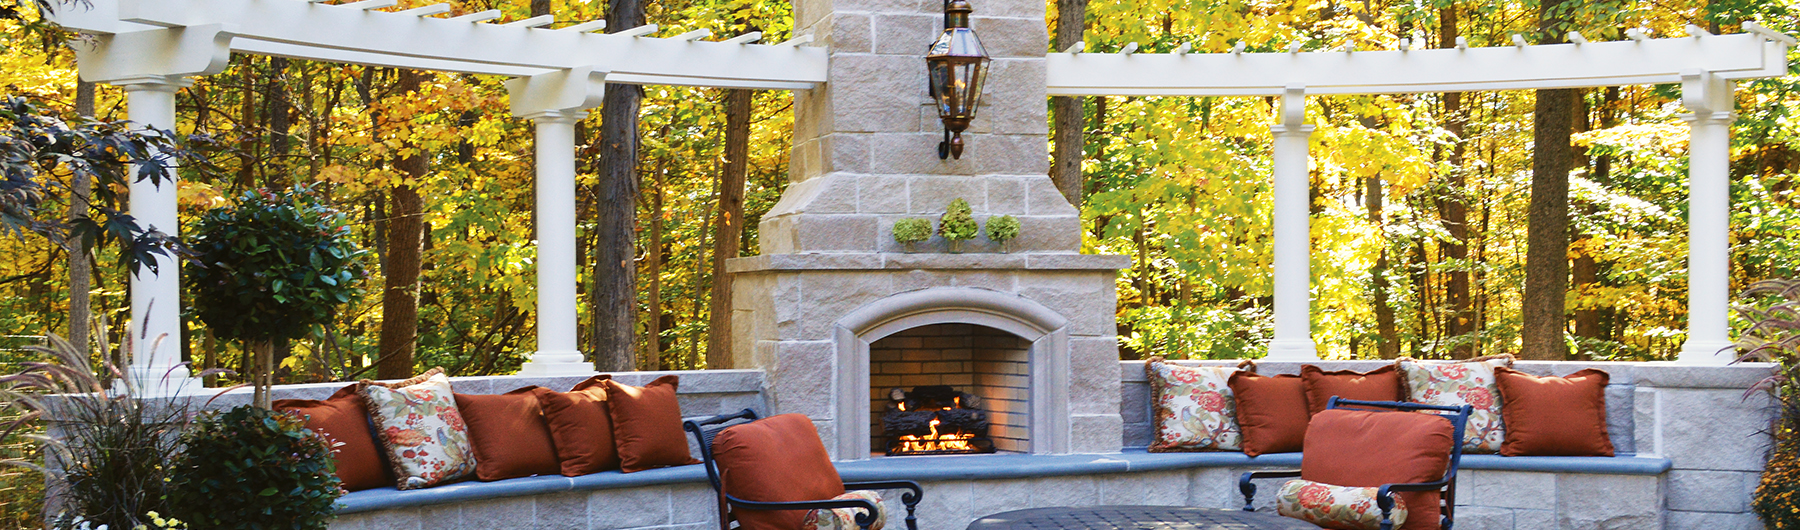 curved-pergola-outdoor-fireplace